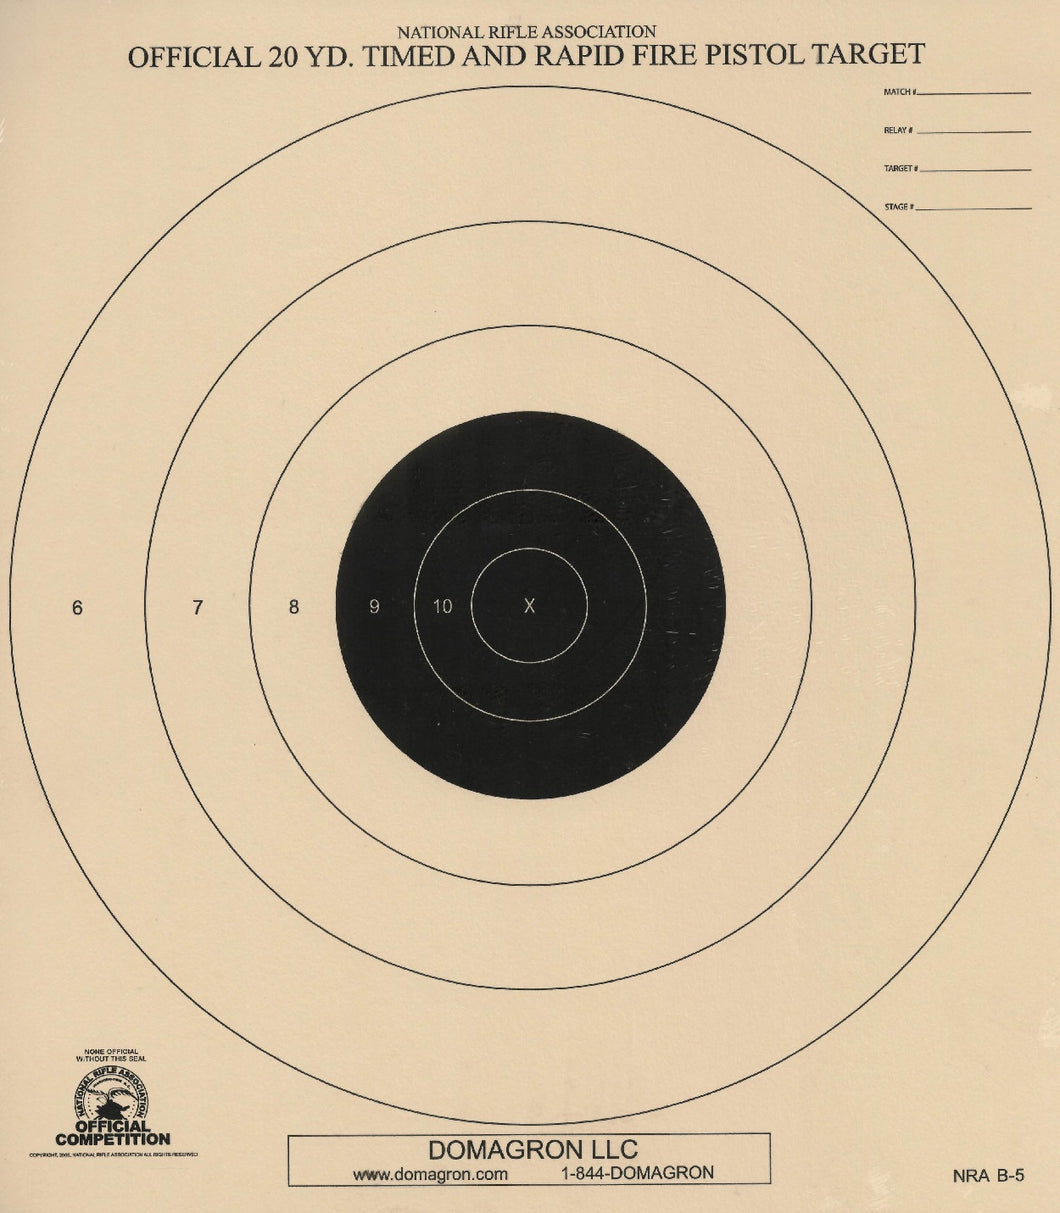 B-5 - 20 Yard Timed and Rapid Fire Pistol Target Official NRA Target - DOMAGRON